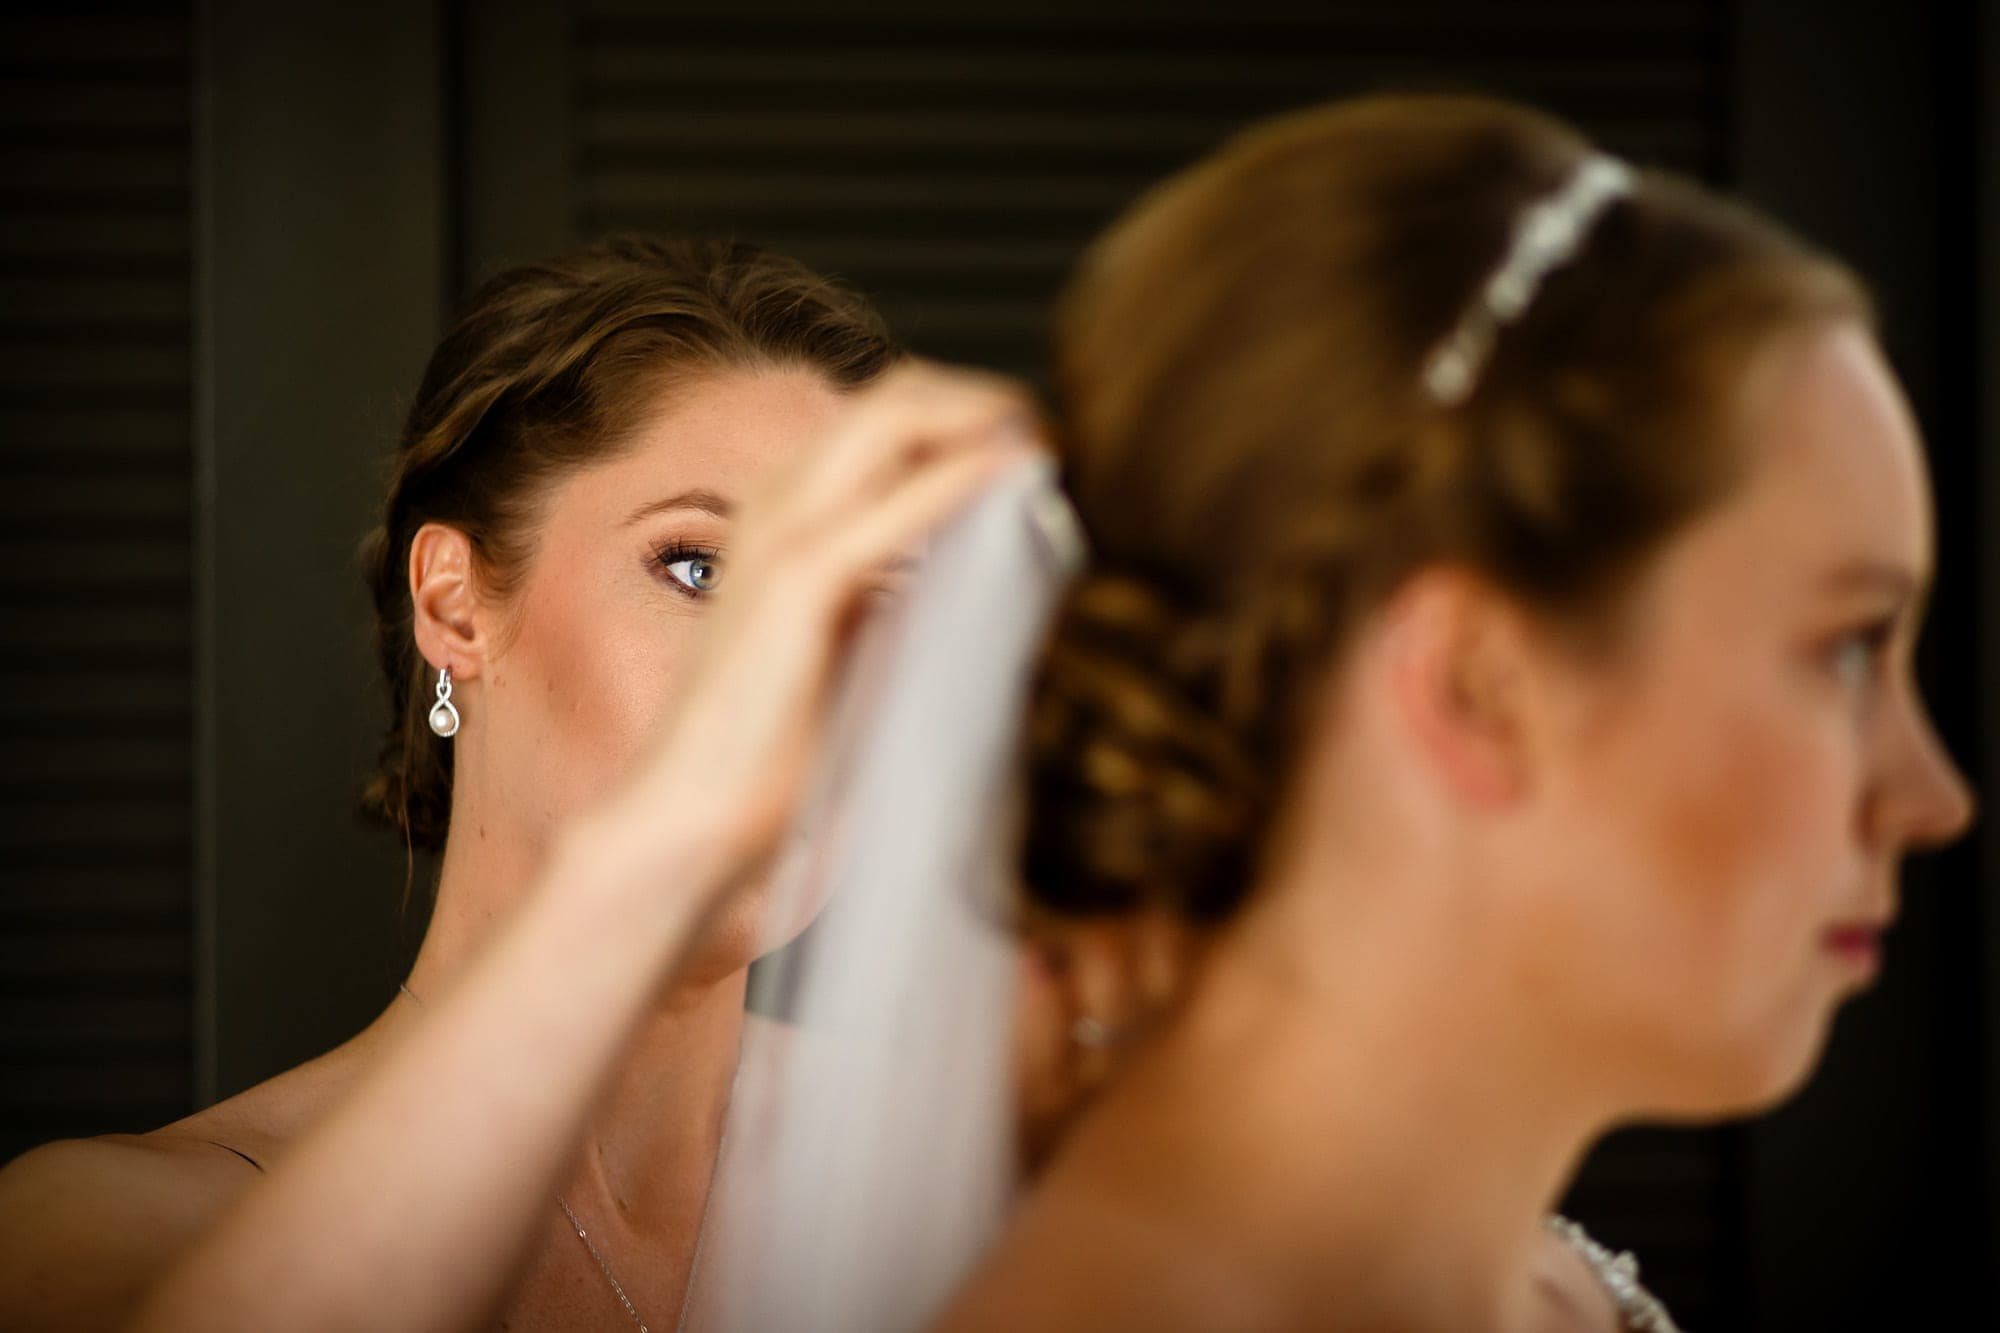 A sister of the bride adjusts the veil before the wedding